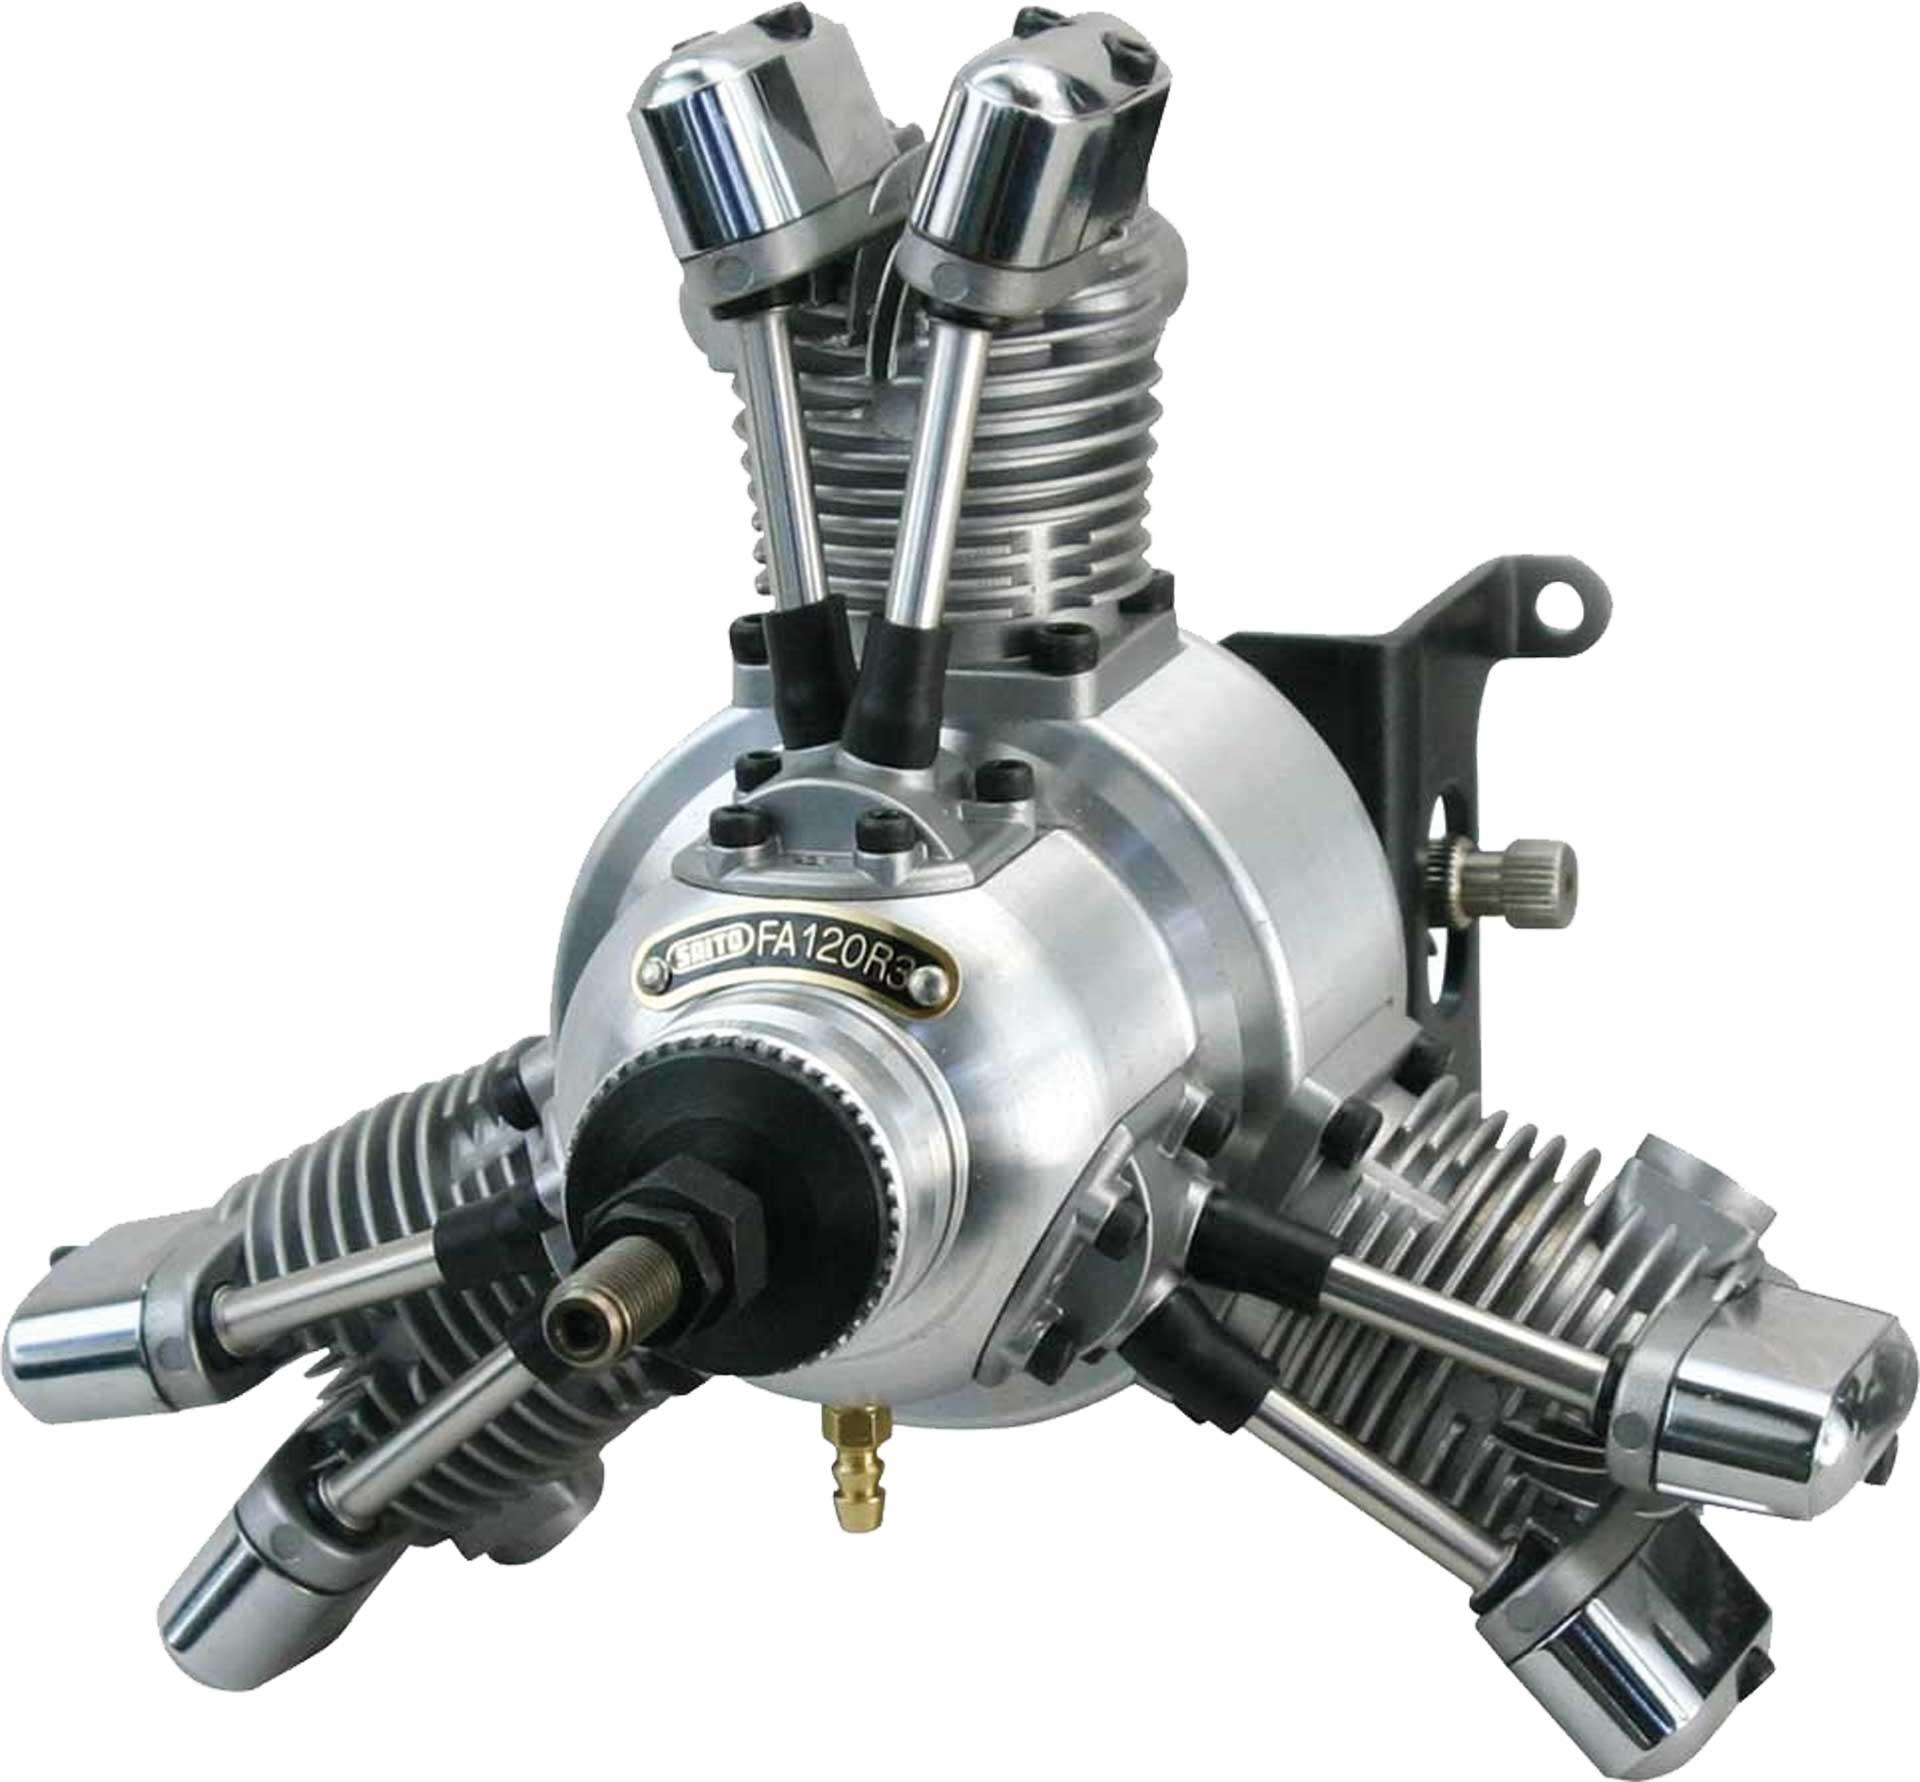 SAITO FA-120R3 3-CYLINDRES MOTEUR THERMIQUE  RADIAL